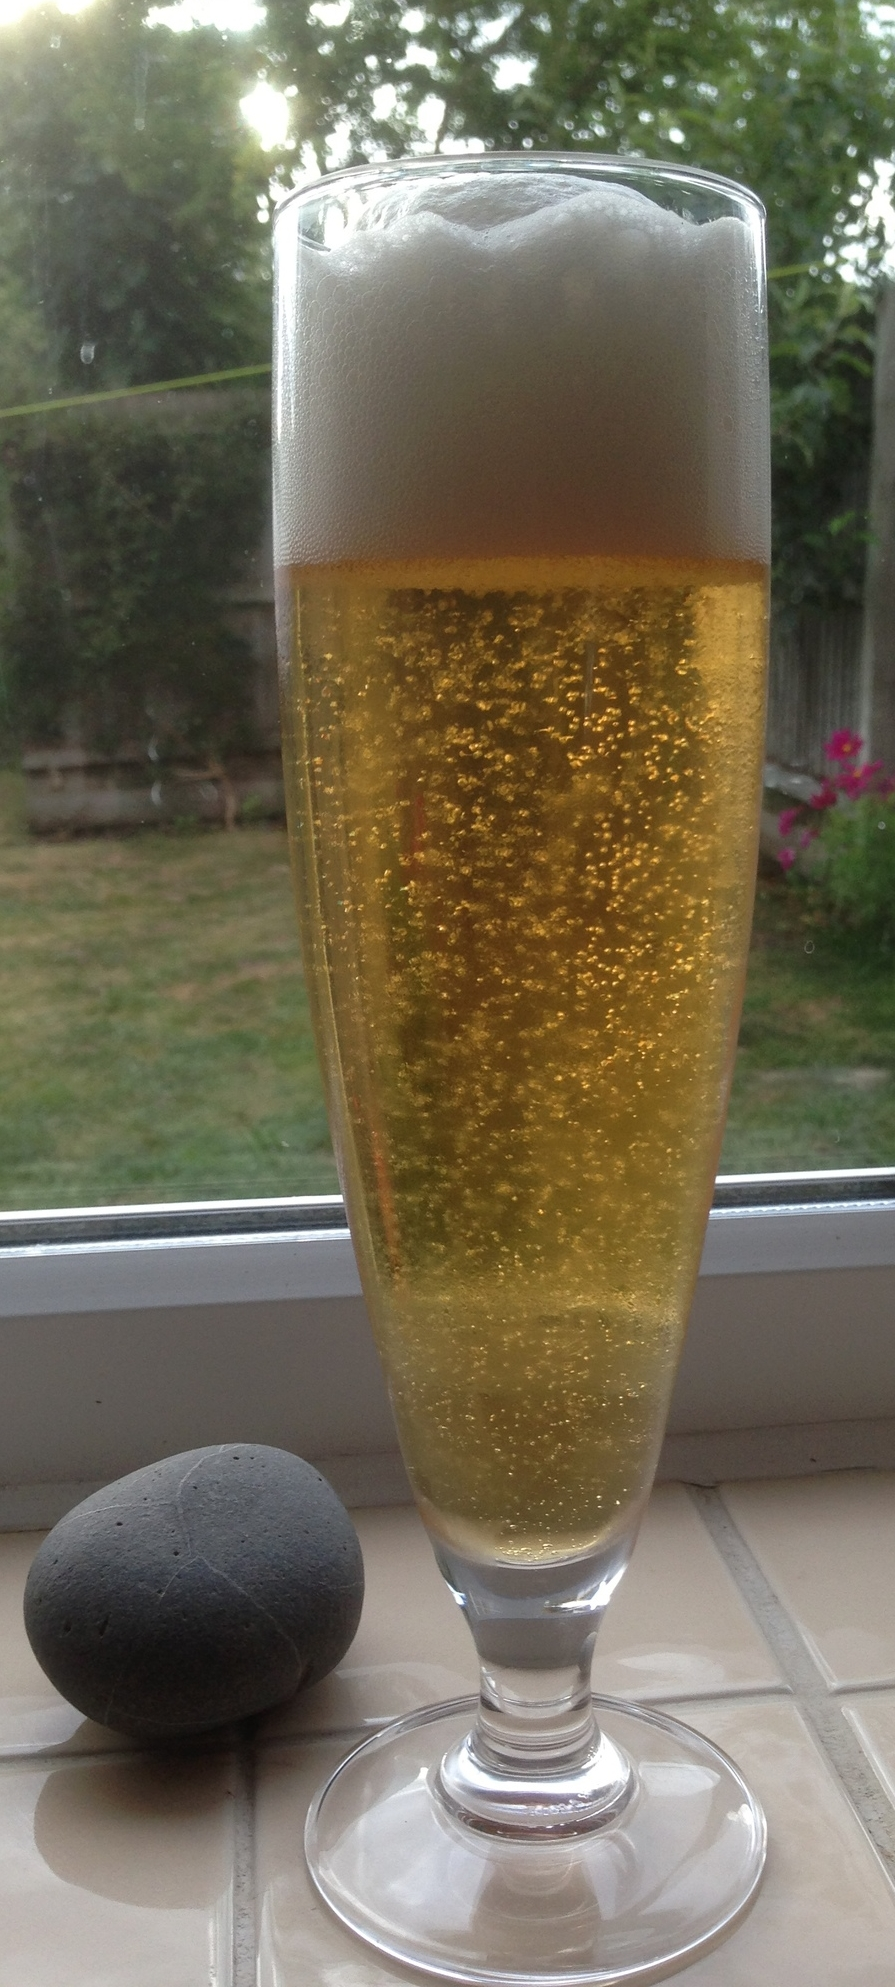 """Kolsch - distinctive pale hue, brilliant white rocky head and light carbonation. The greatness of this beer style is better exemplafied by the presence of an """"arty stone"""" next to it and a washing line in the background - truly a beer of the people !"""